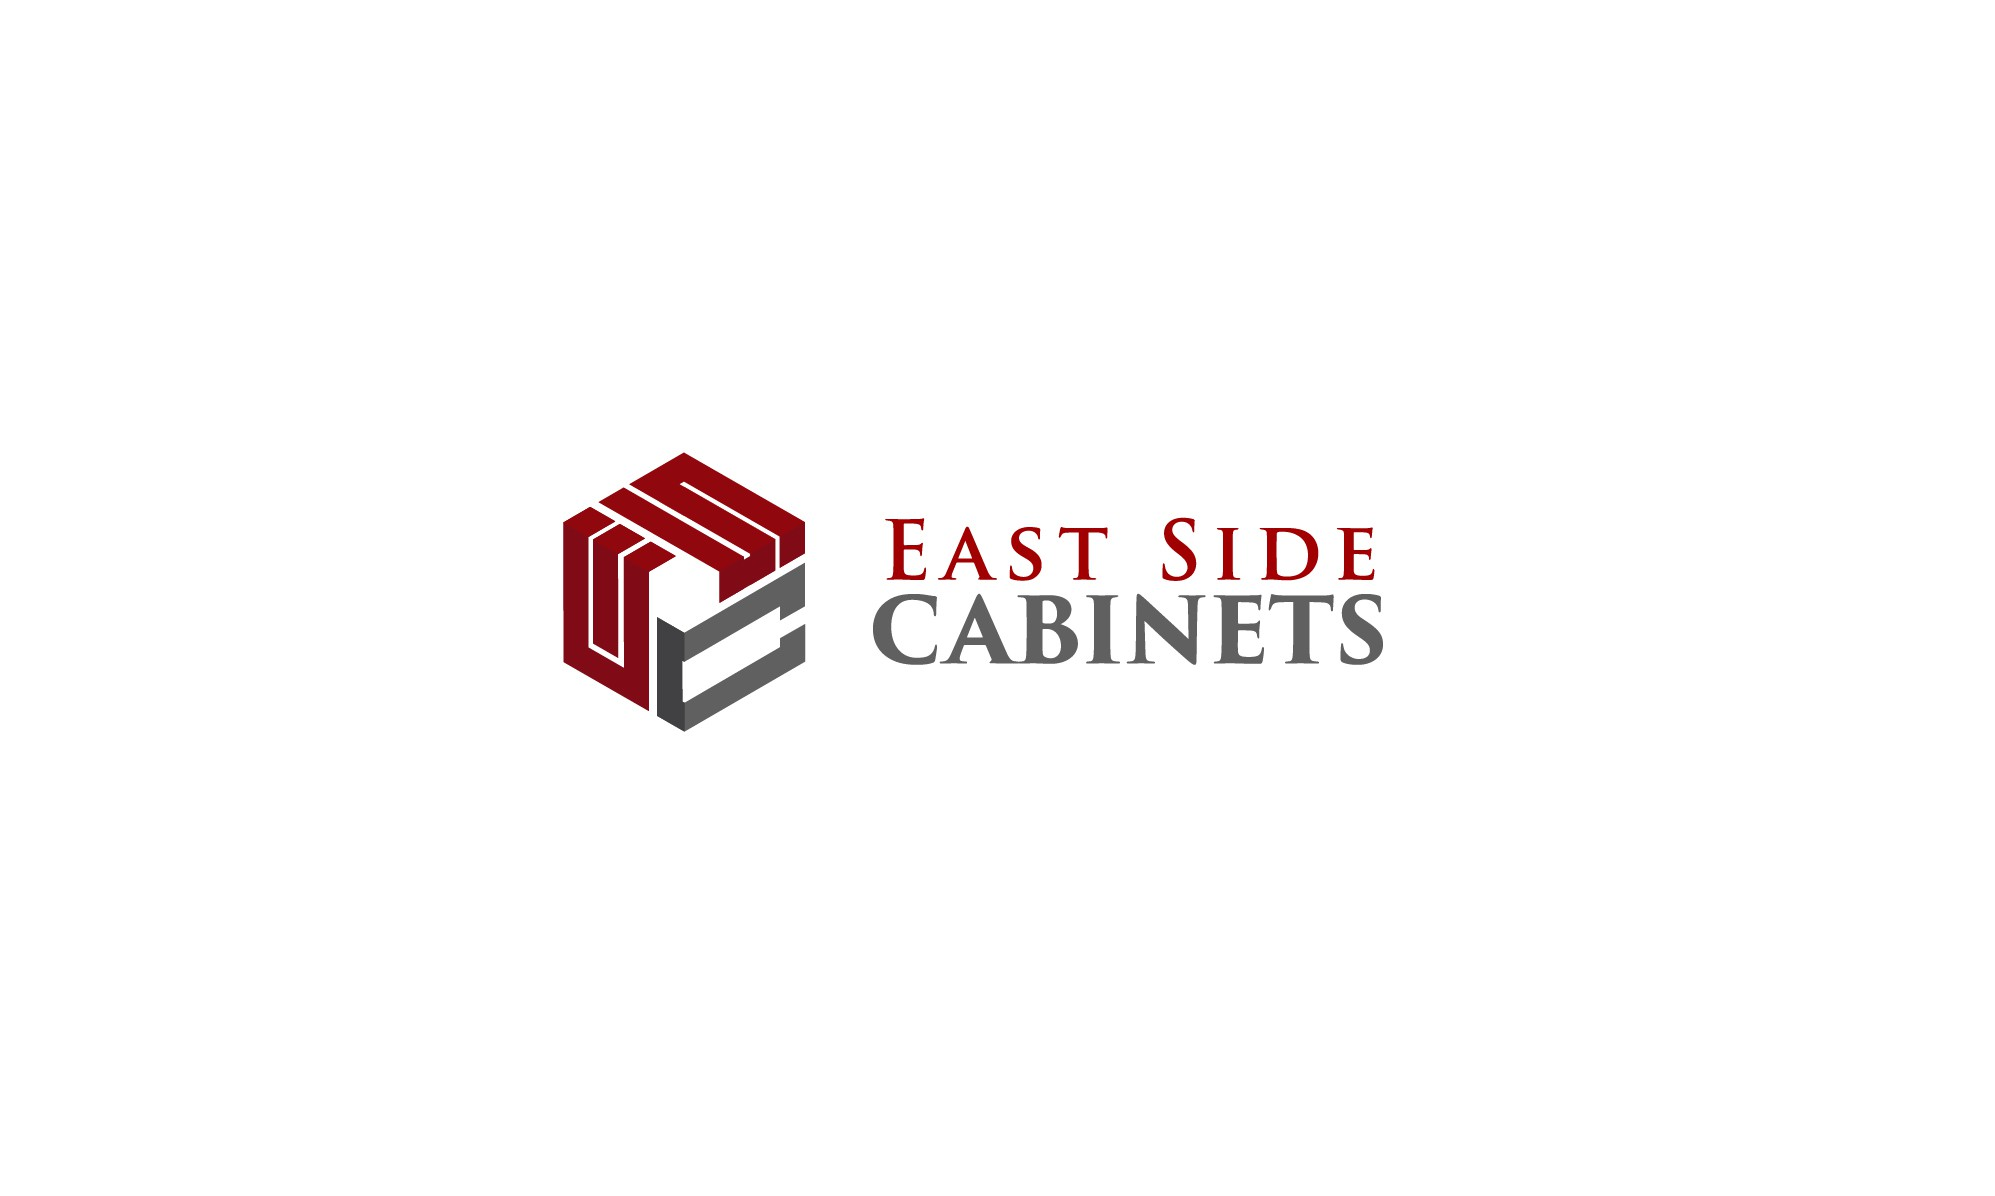 Custom woodworking business needs a powerful new logo for East Side Cabinets